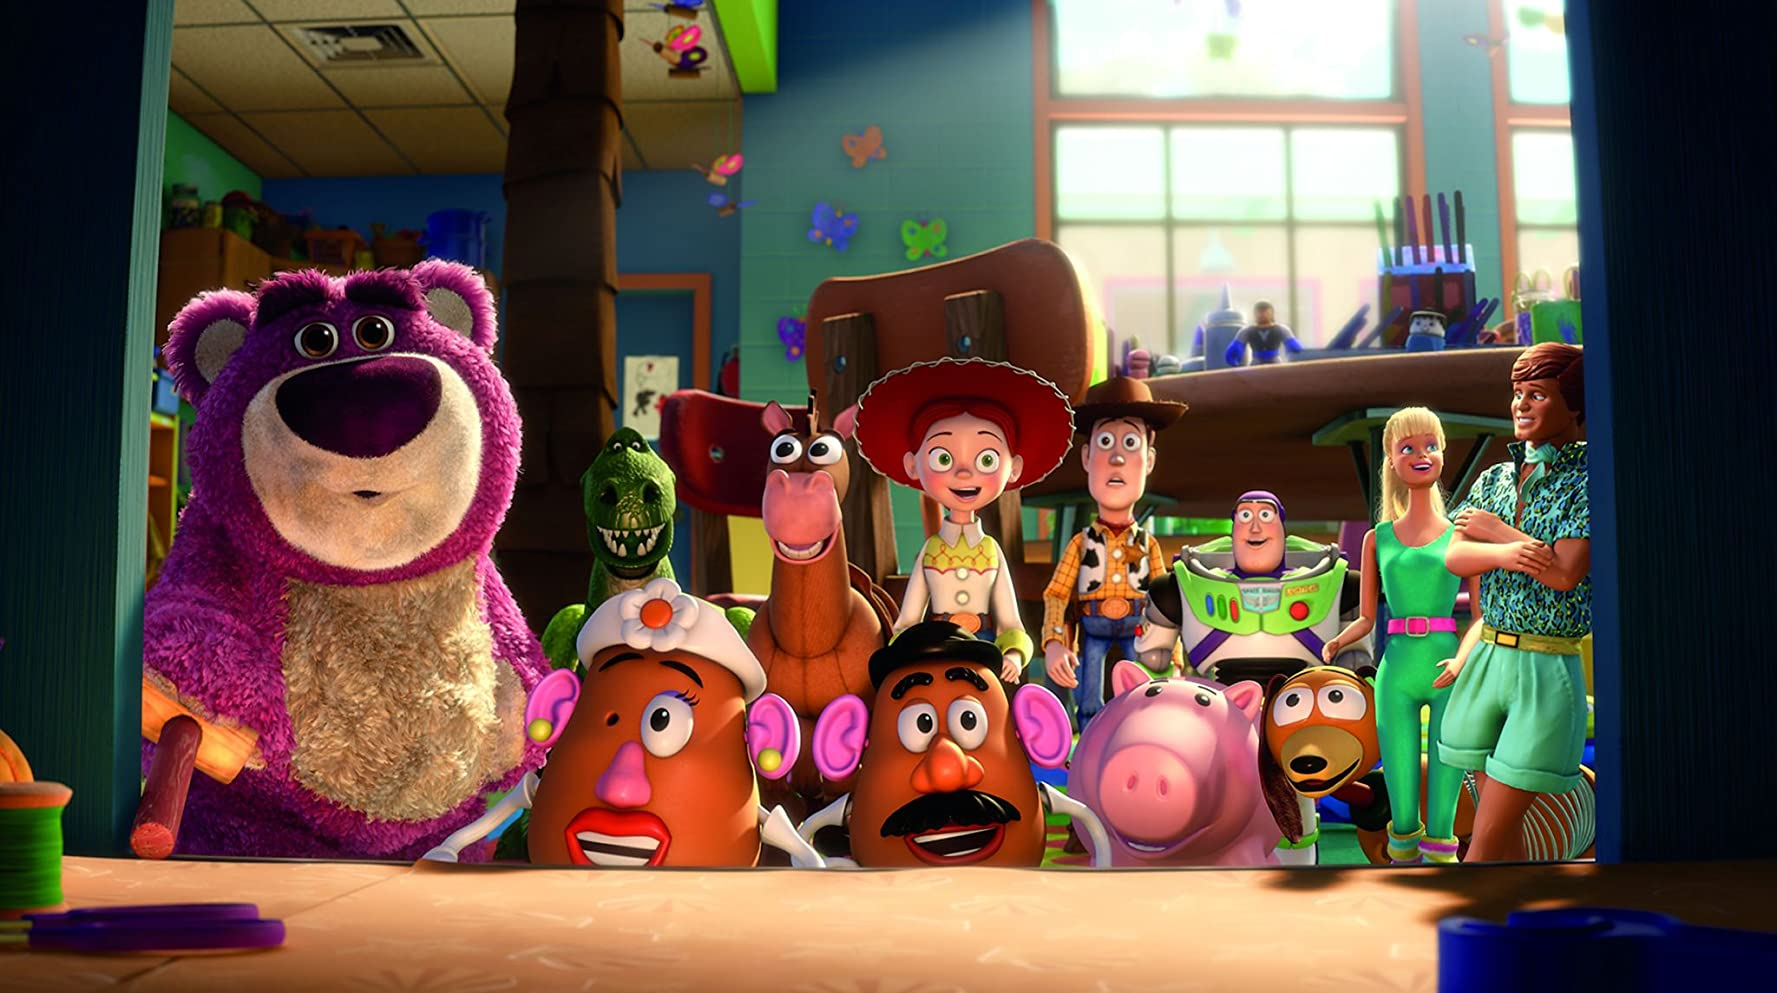 Tom Hanks, Joan Cusack, Michael Keaton, Tim Allen, Ned Beatty, John Ratzenberger, Wallace Shawn, Jodi Benson, Blake Clark, Estelle Harris, and Don Rickles in Toy Story 3 (2010)